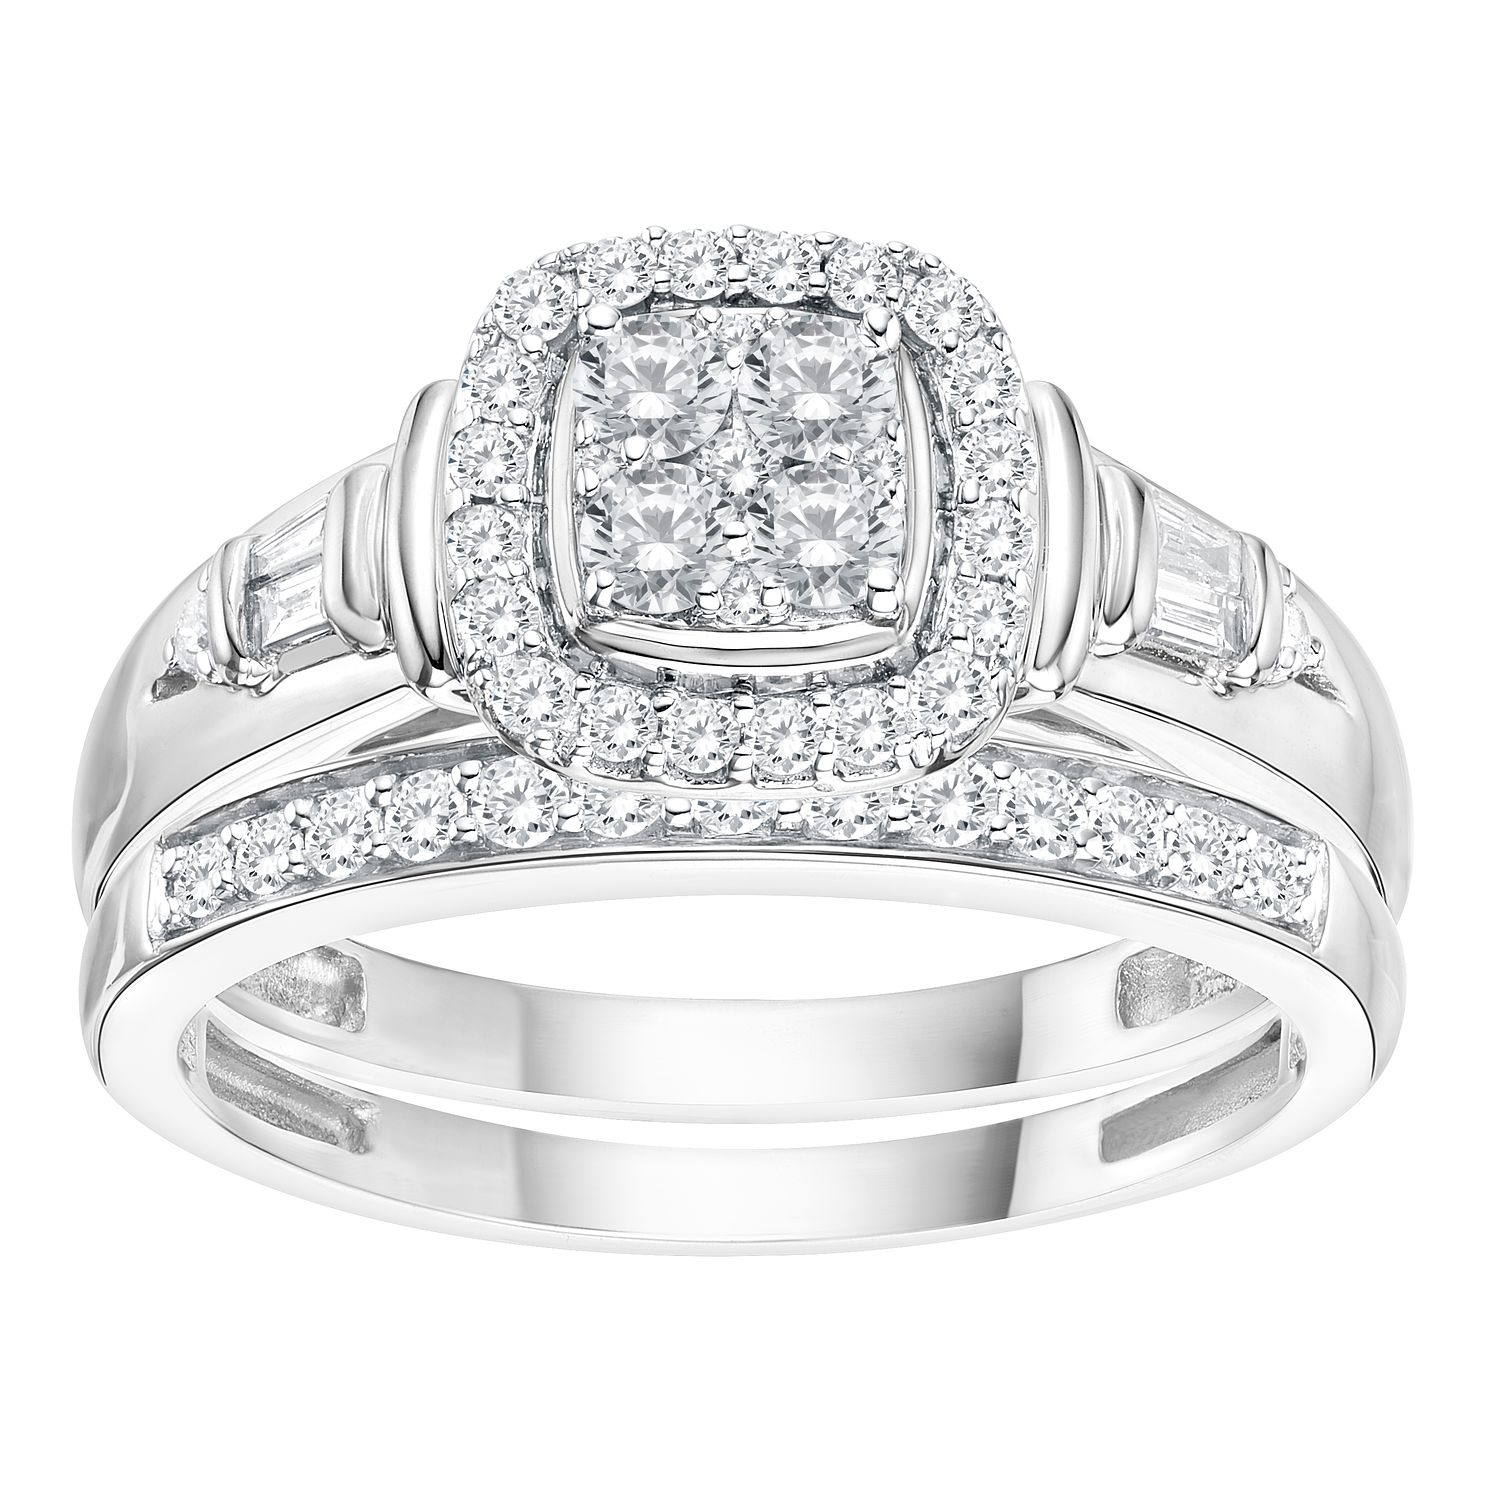 engagement pave on sits ogi white diamond rings stone daimond ready in be circle double which products ltd platinum also available set to engagment center for gold a halo ring shank imageurl head half carat